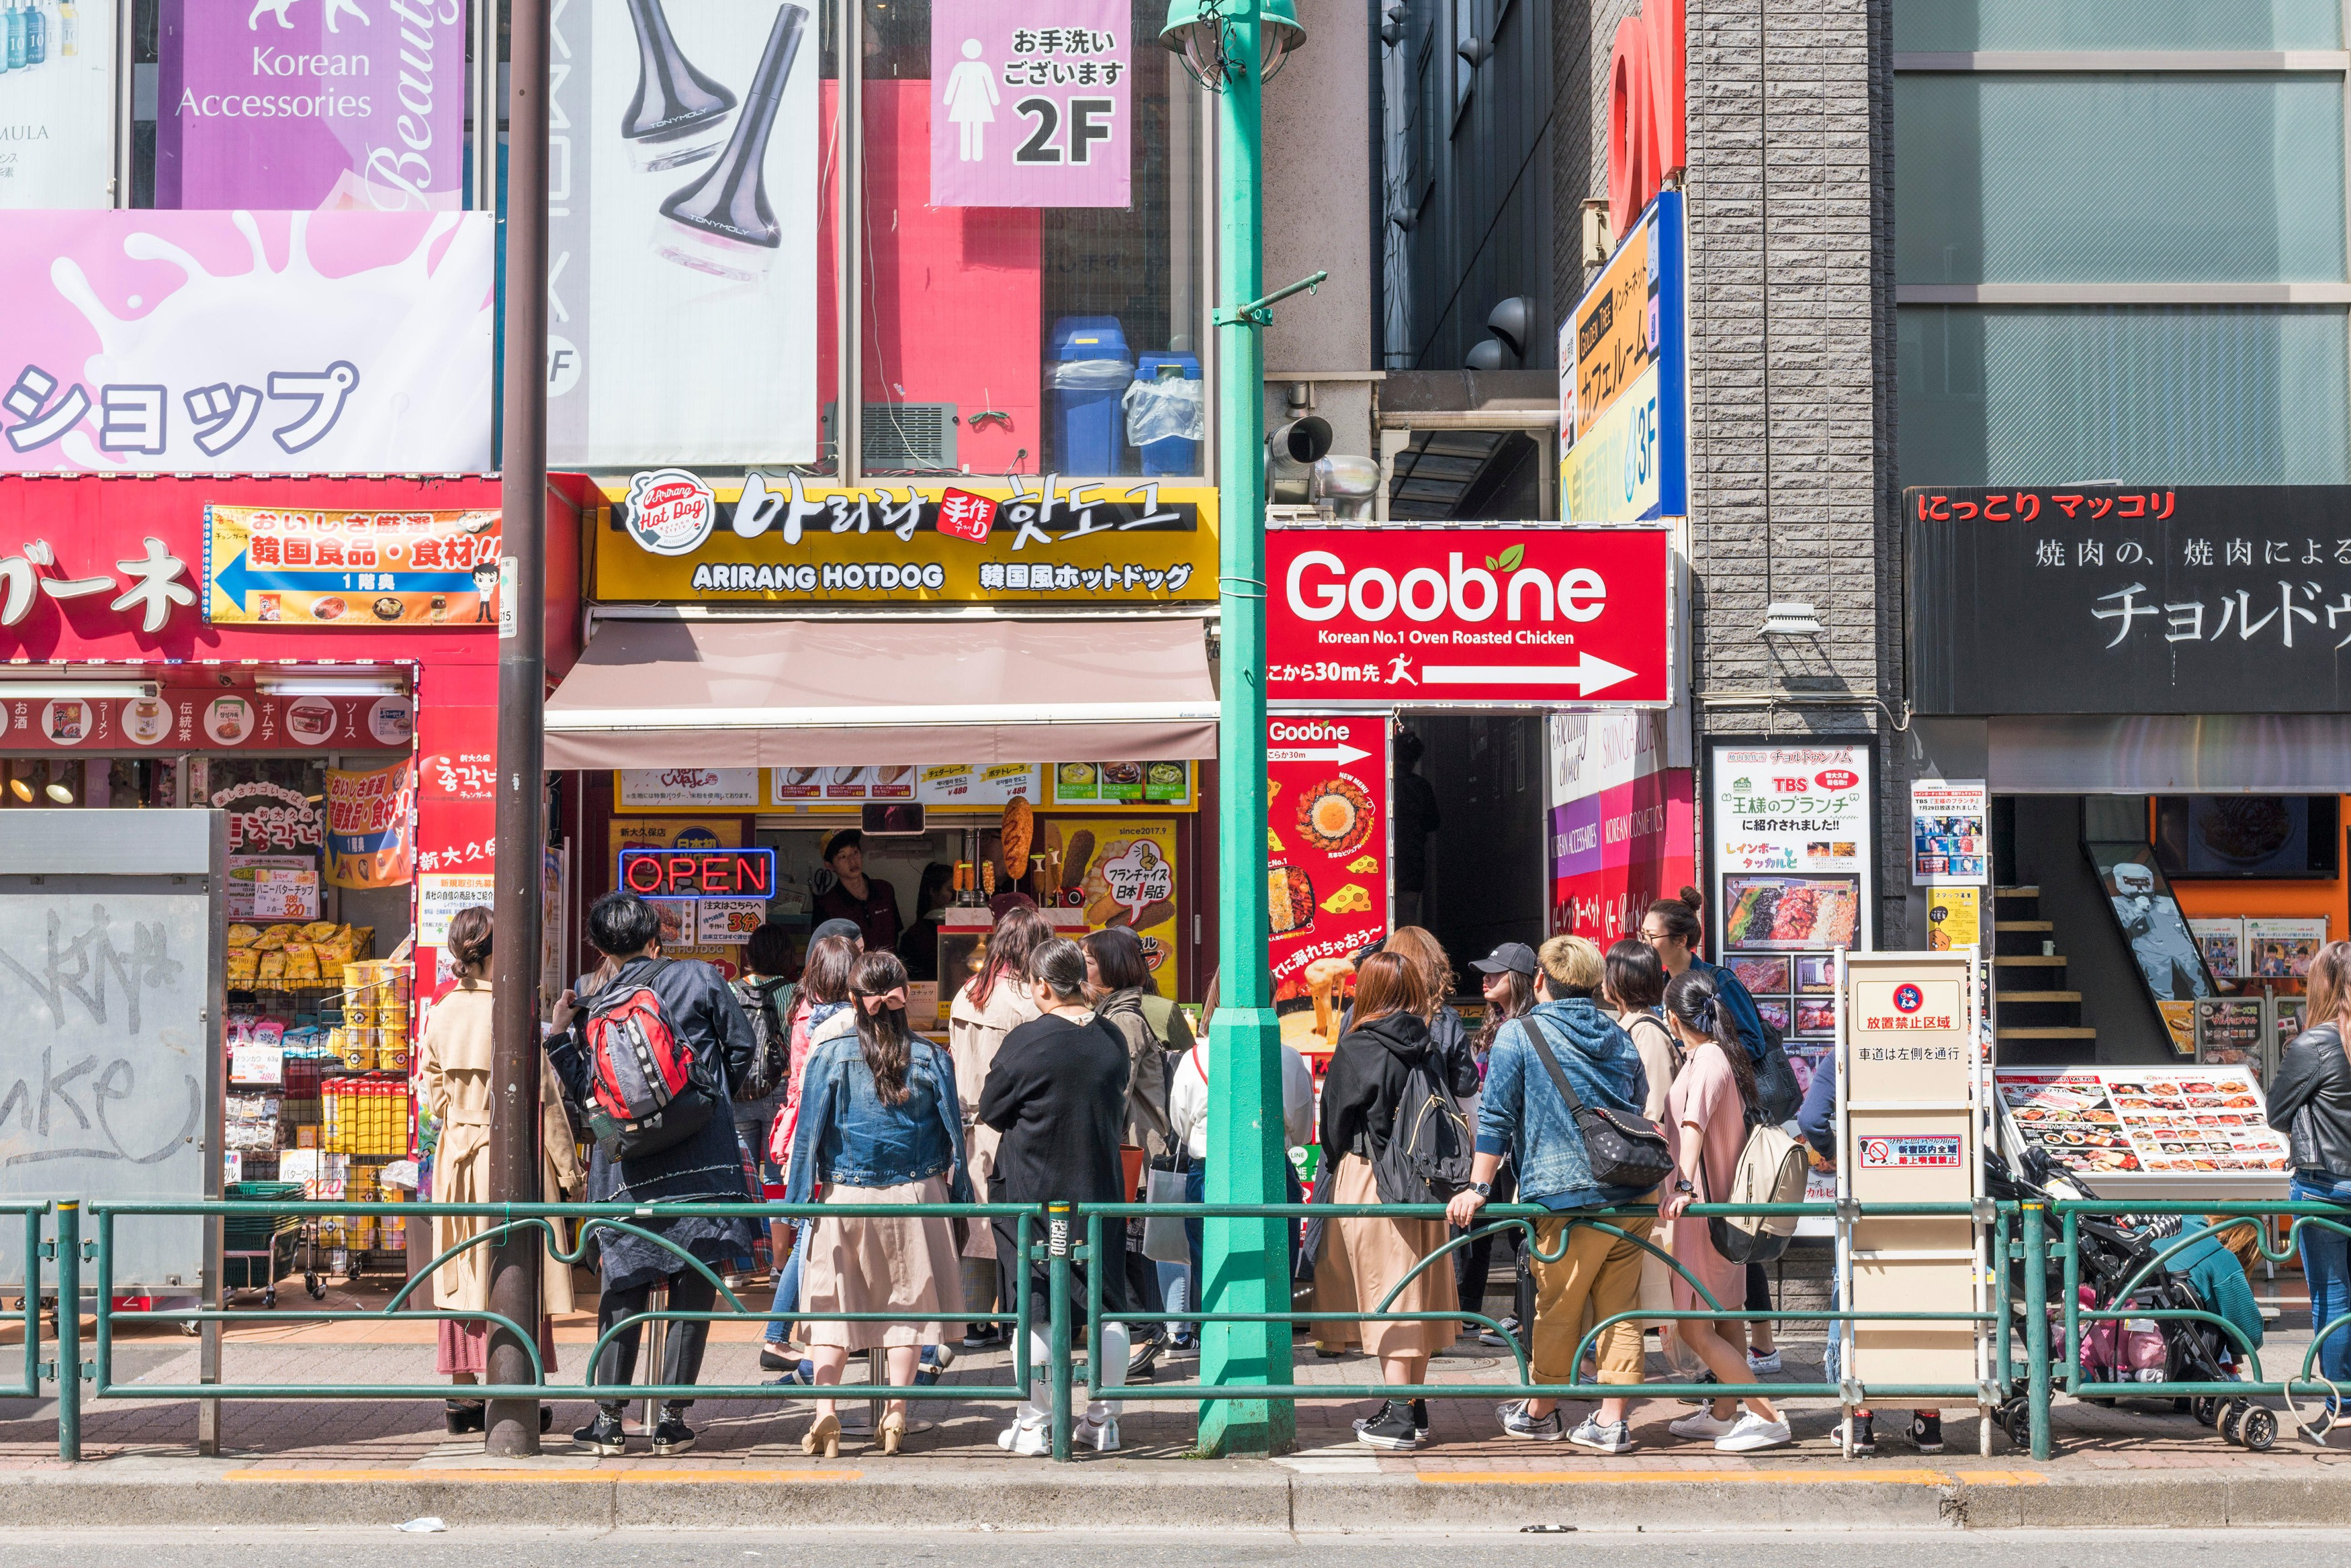 Shin-Okubo is home to some of the best Korean food outside Korea